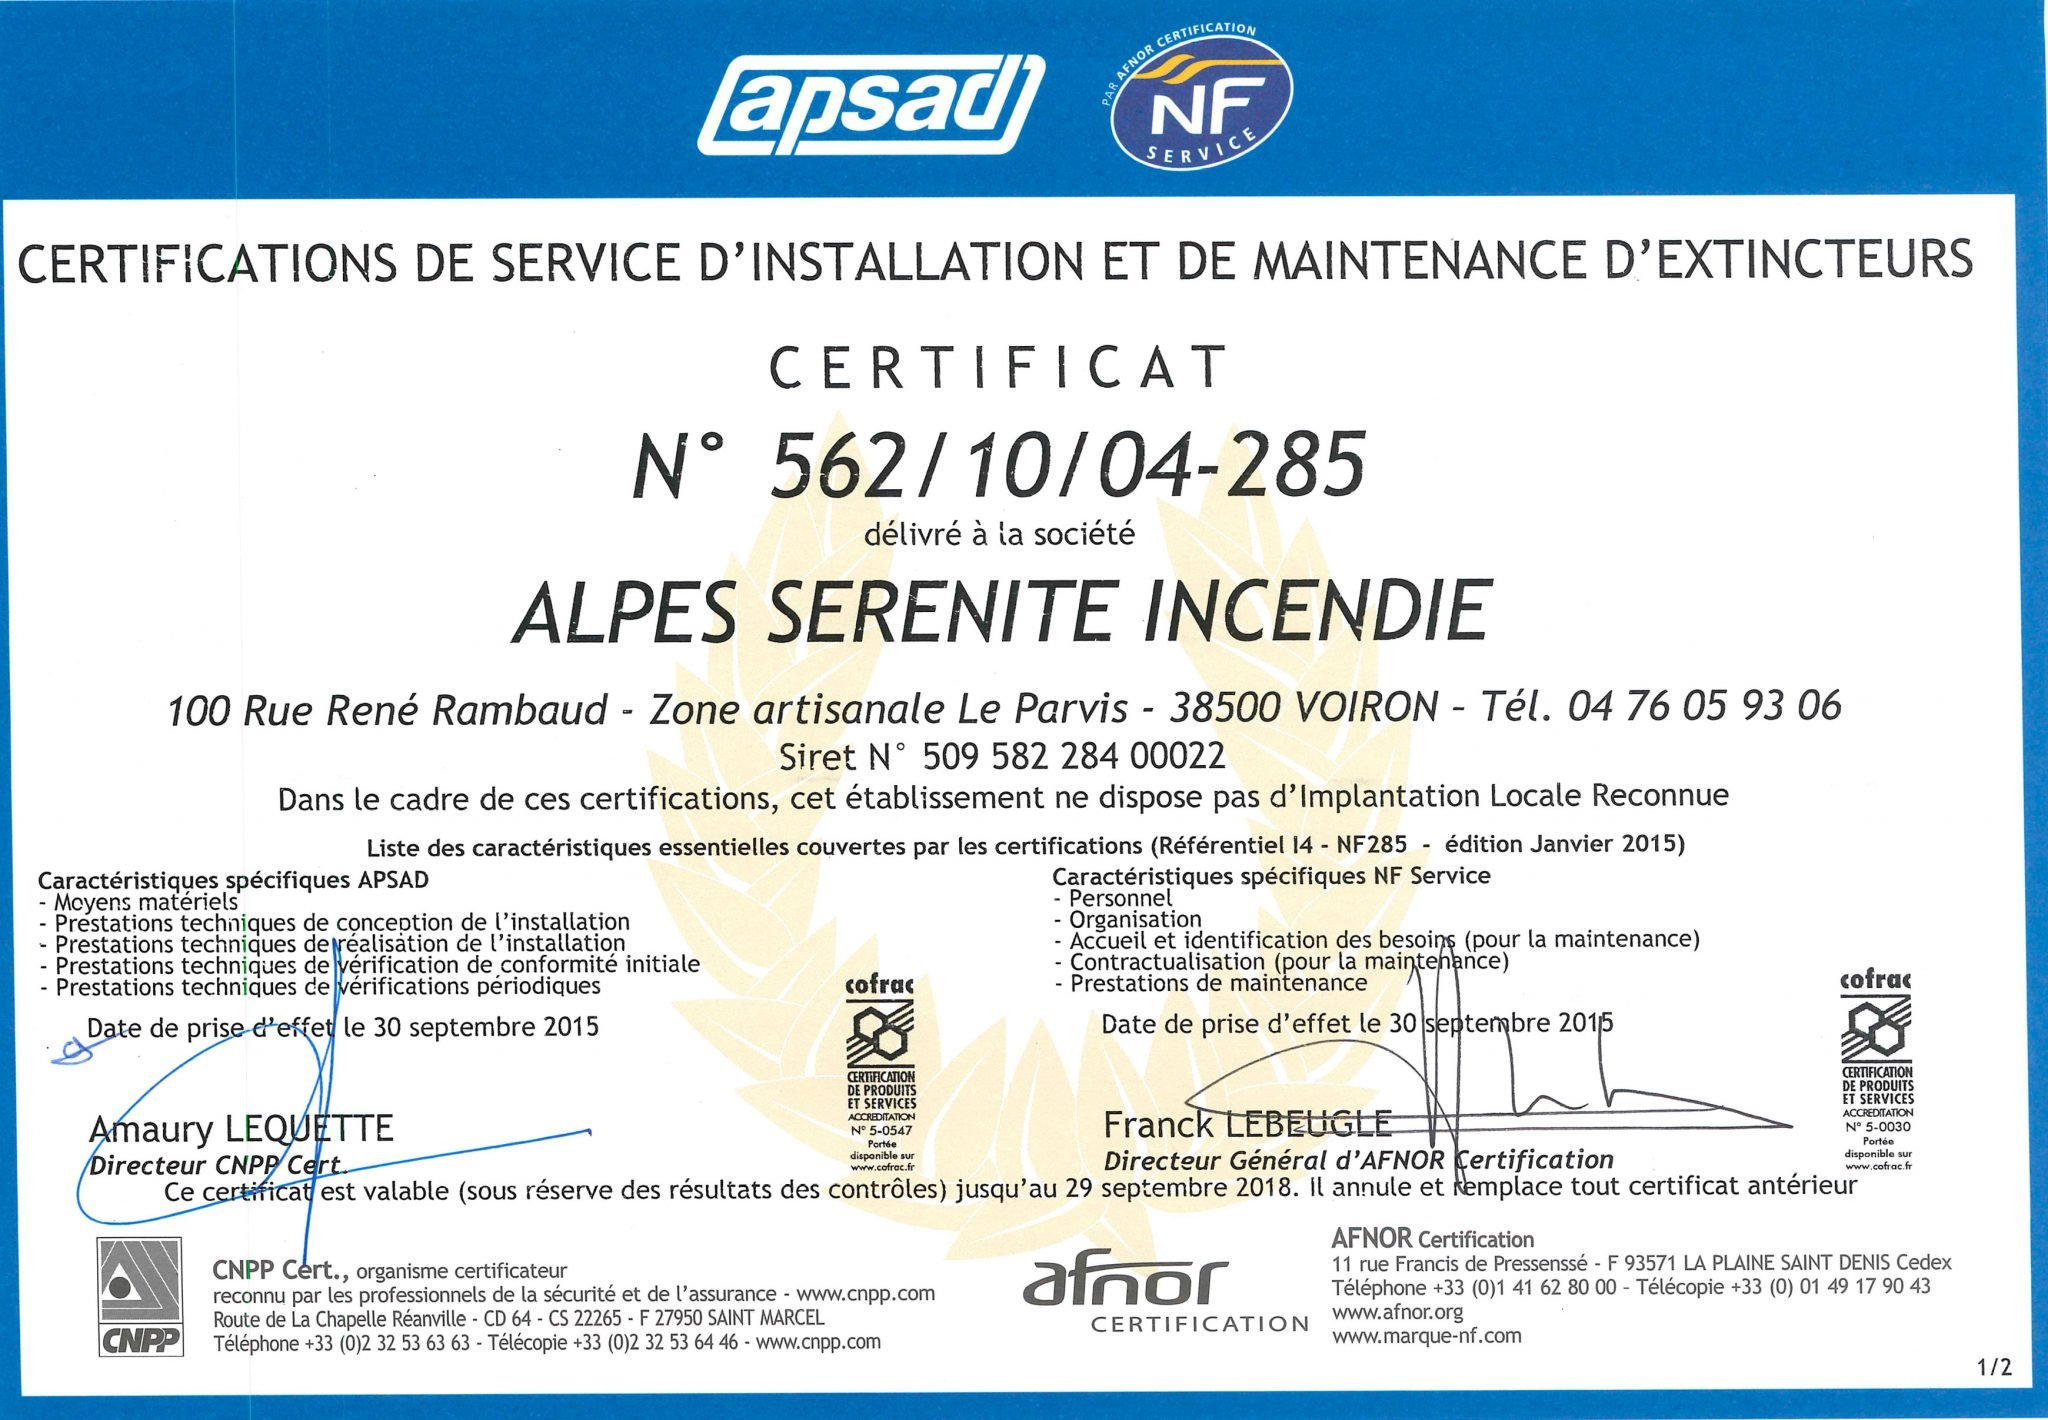 asi2 - Nos certifications